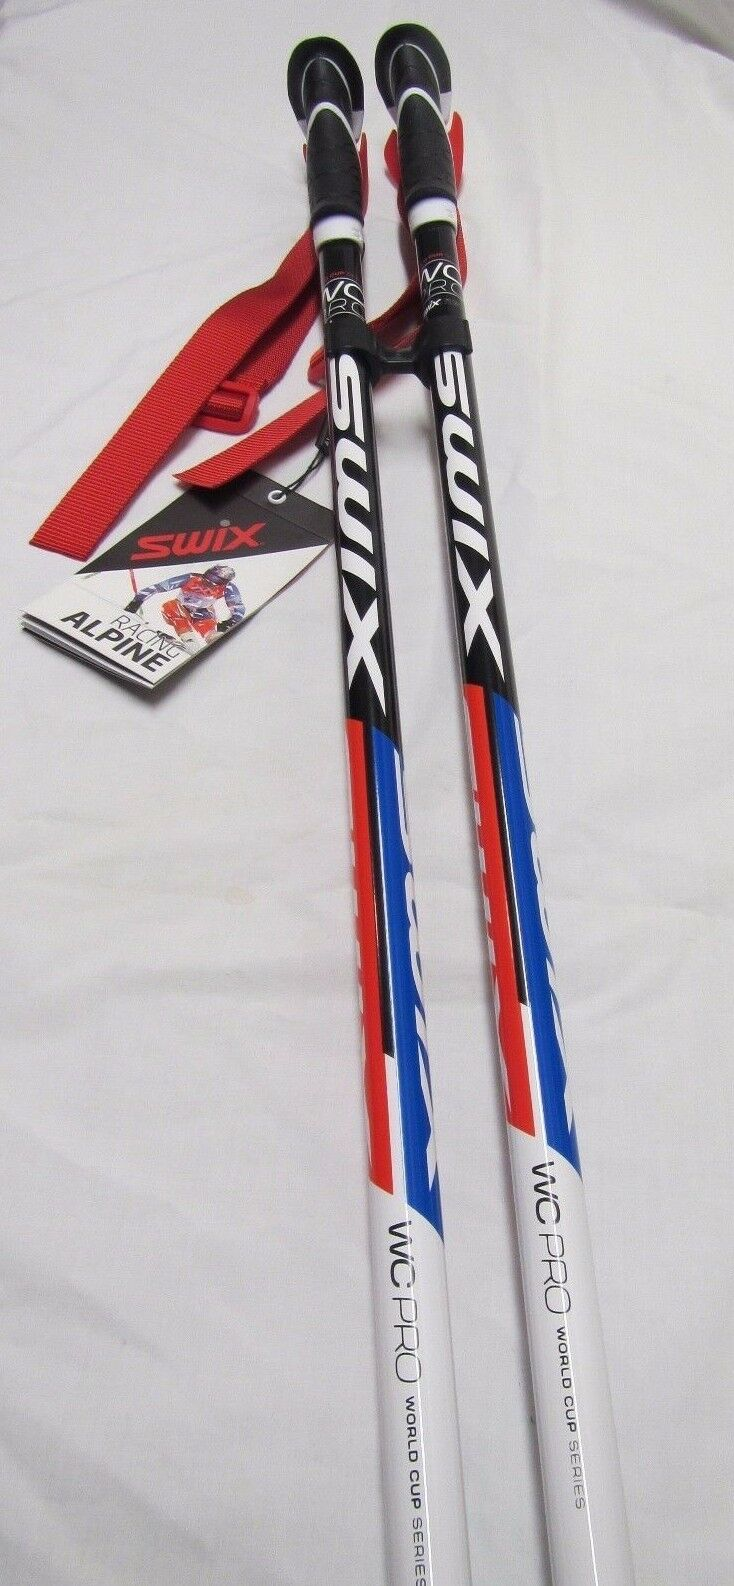 SWIX WORLD CUP SKI RACING POLES SLALOM 110 CM 44 INCHES - 130 CM 52 INCHES